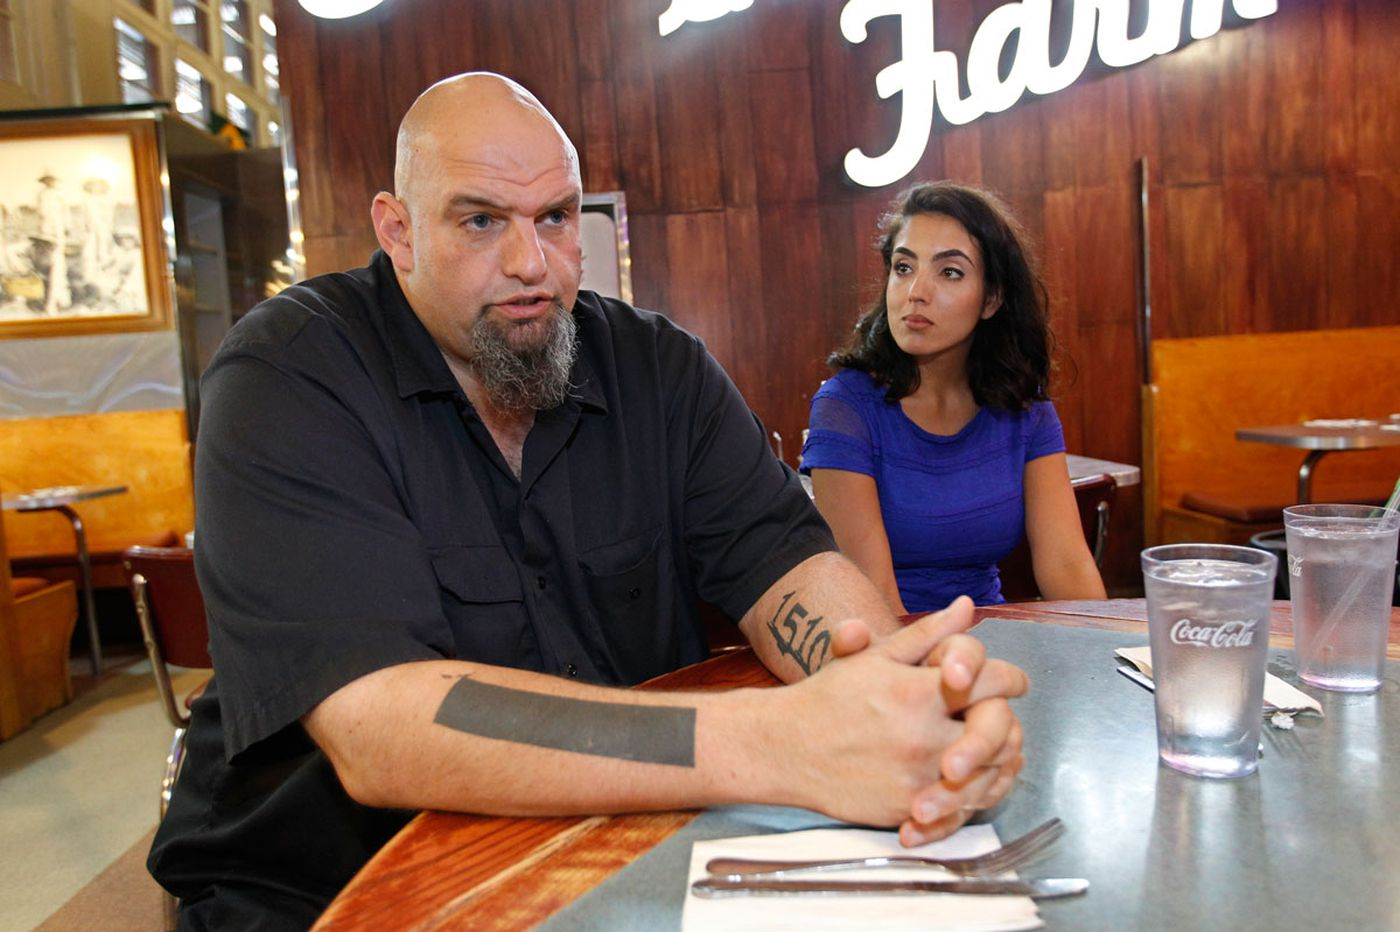 Racial slur directed at Fetterman's wife shows how far we still have to go | Jenice Armstrong